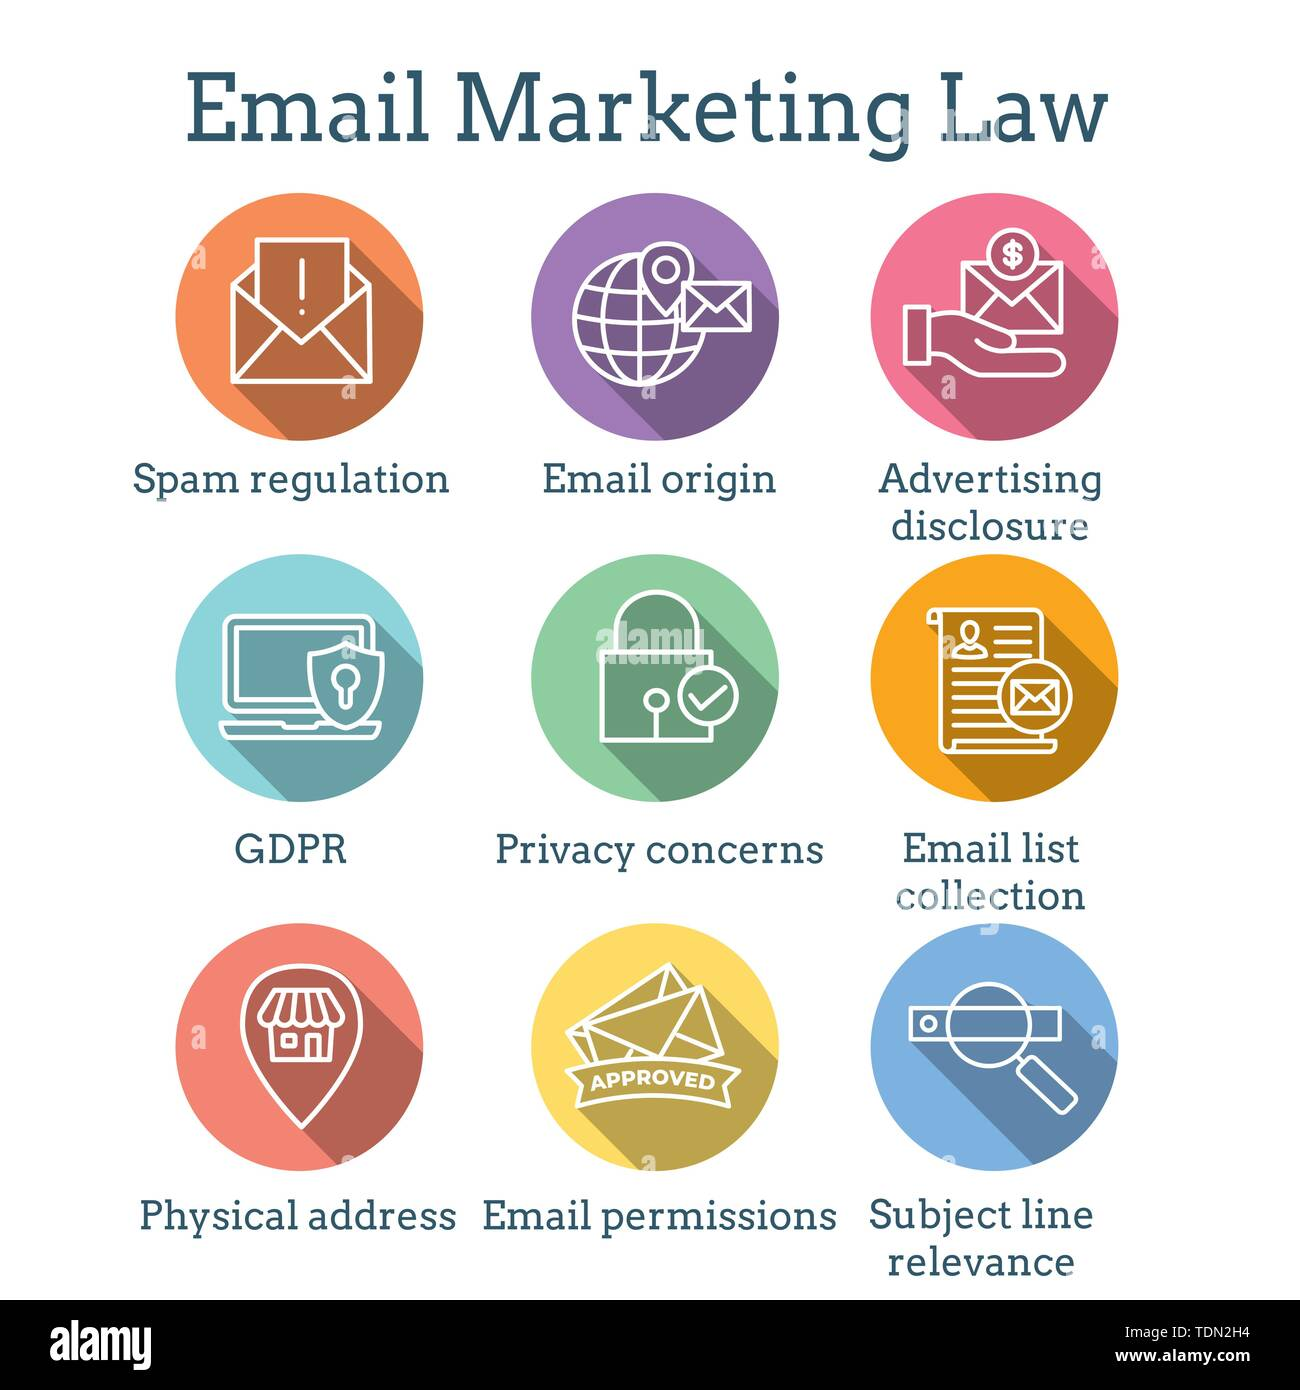 Email Marketing Rules & Regulations Icon Set - Stock Image